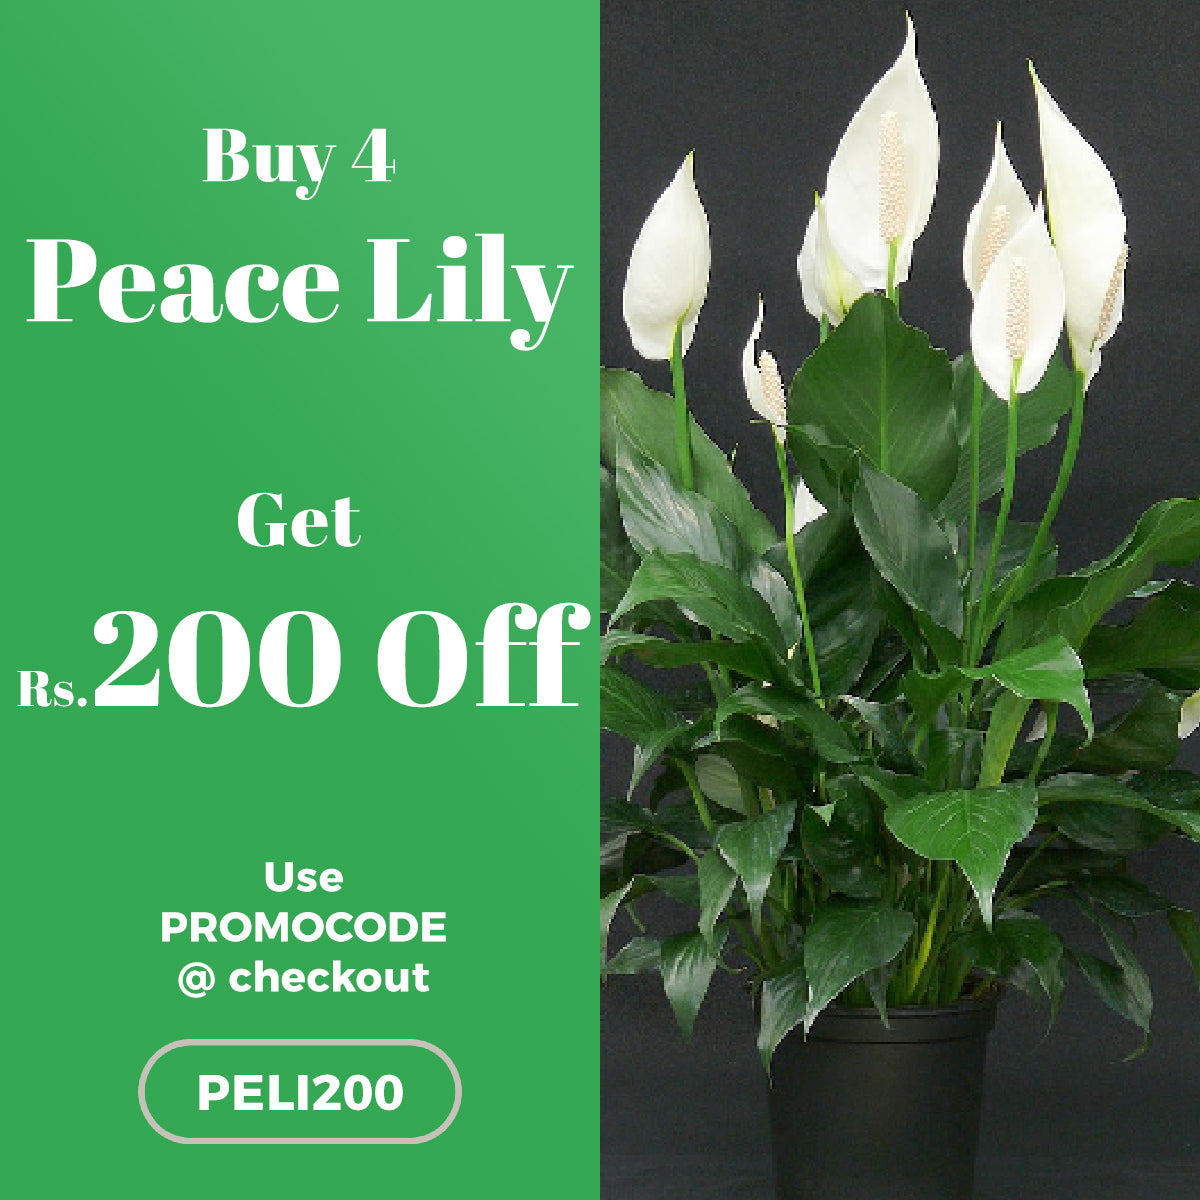 Buy 4 Peace Lily and get Rs.200 OFF